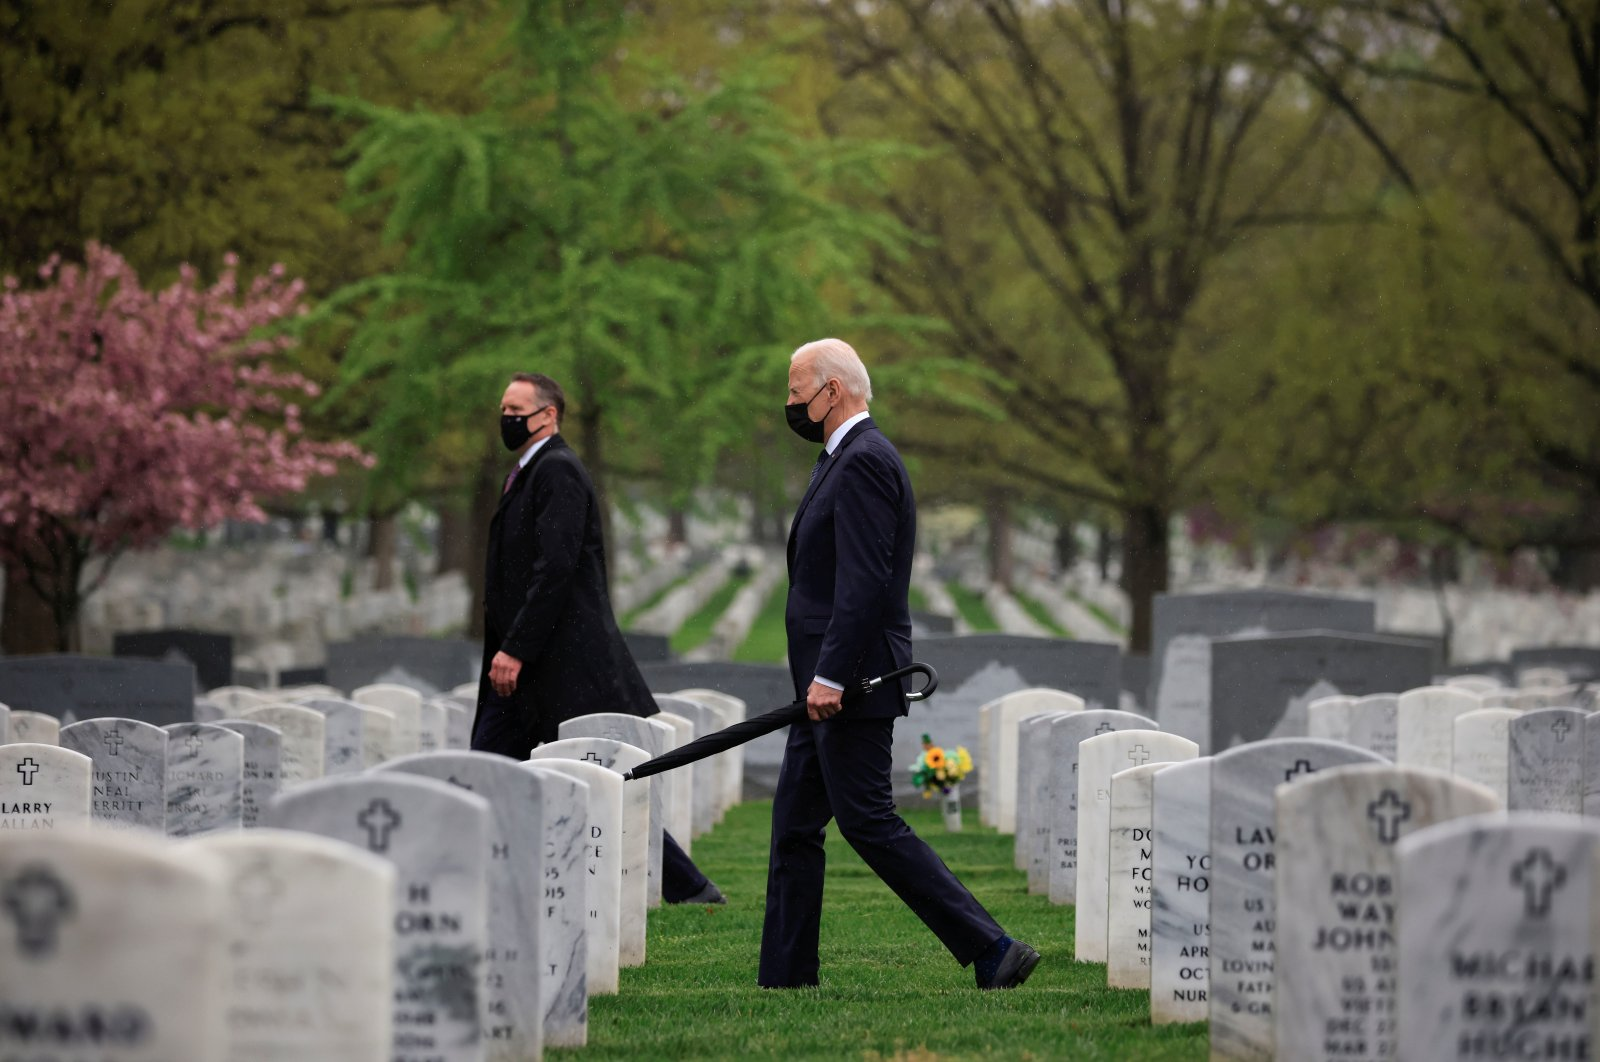 U.S. President Joe Biden carries an umbrella as he walks among graves in a visit to pay his respects to fallen veterans of the Afghan conflict, in Arlington National Cemetery in Arlington, Virginia, U.S., April 14, 2021. (Reuters Photo)